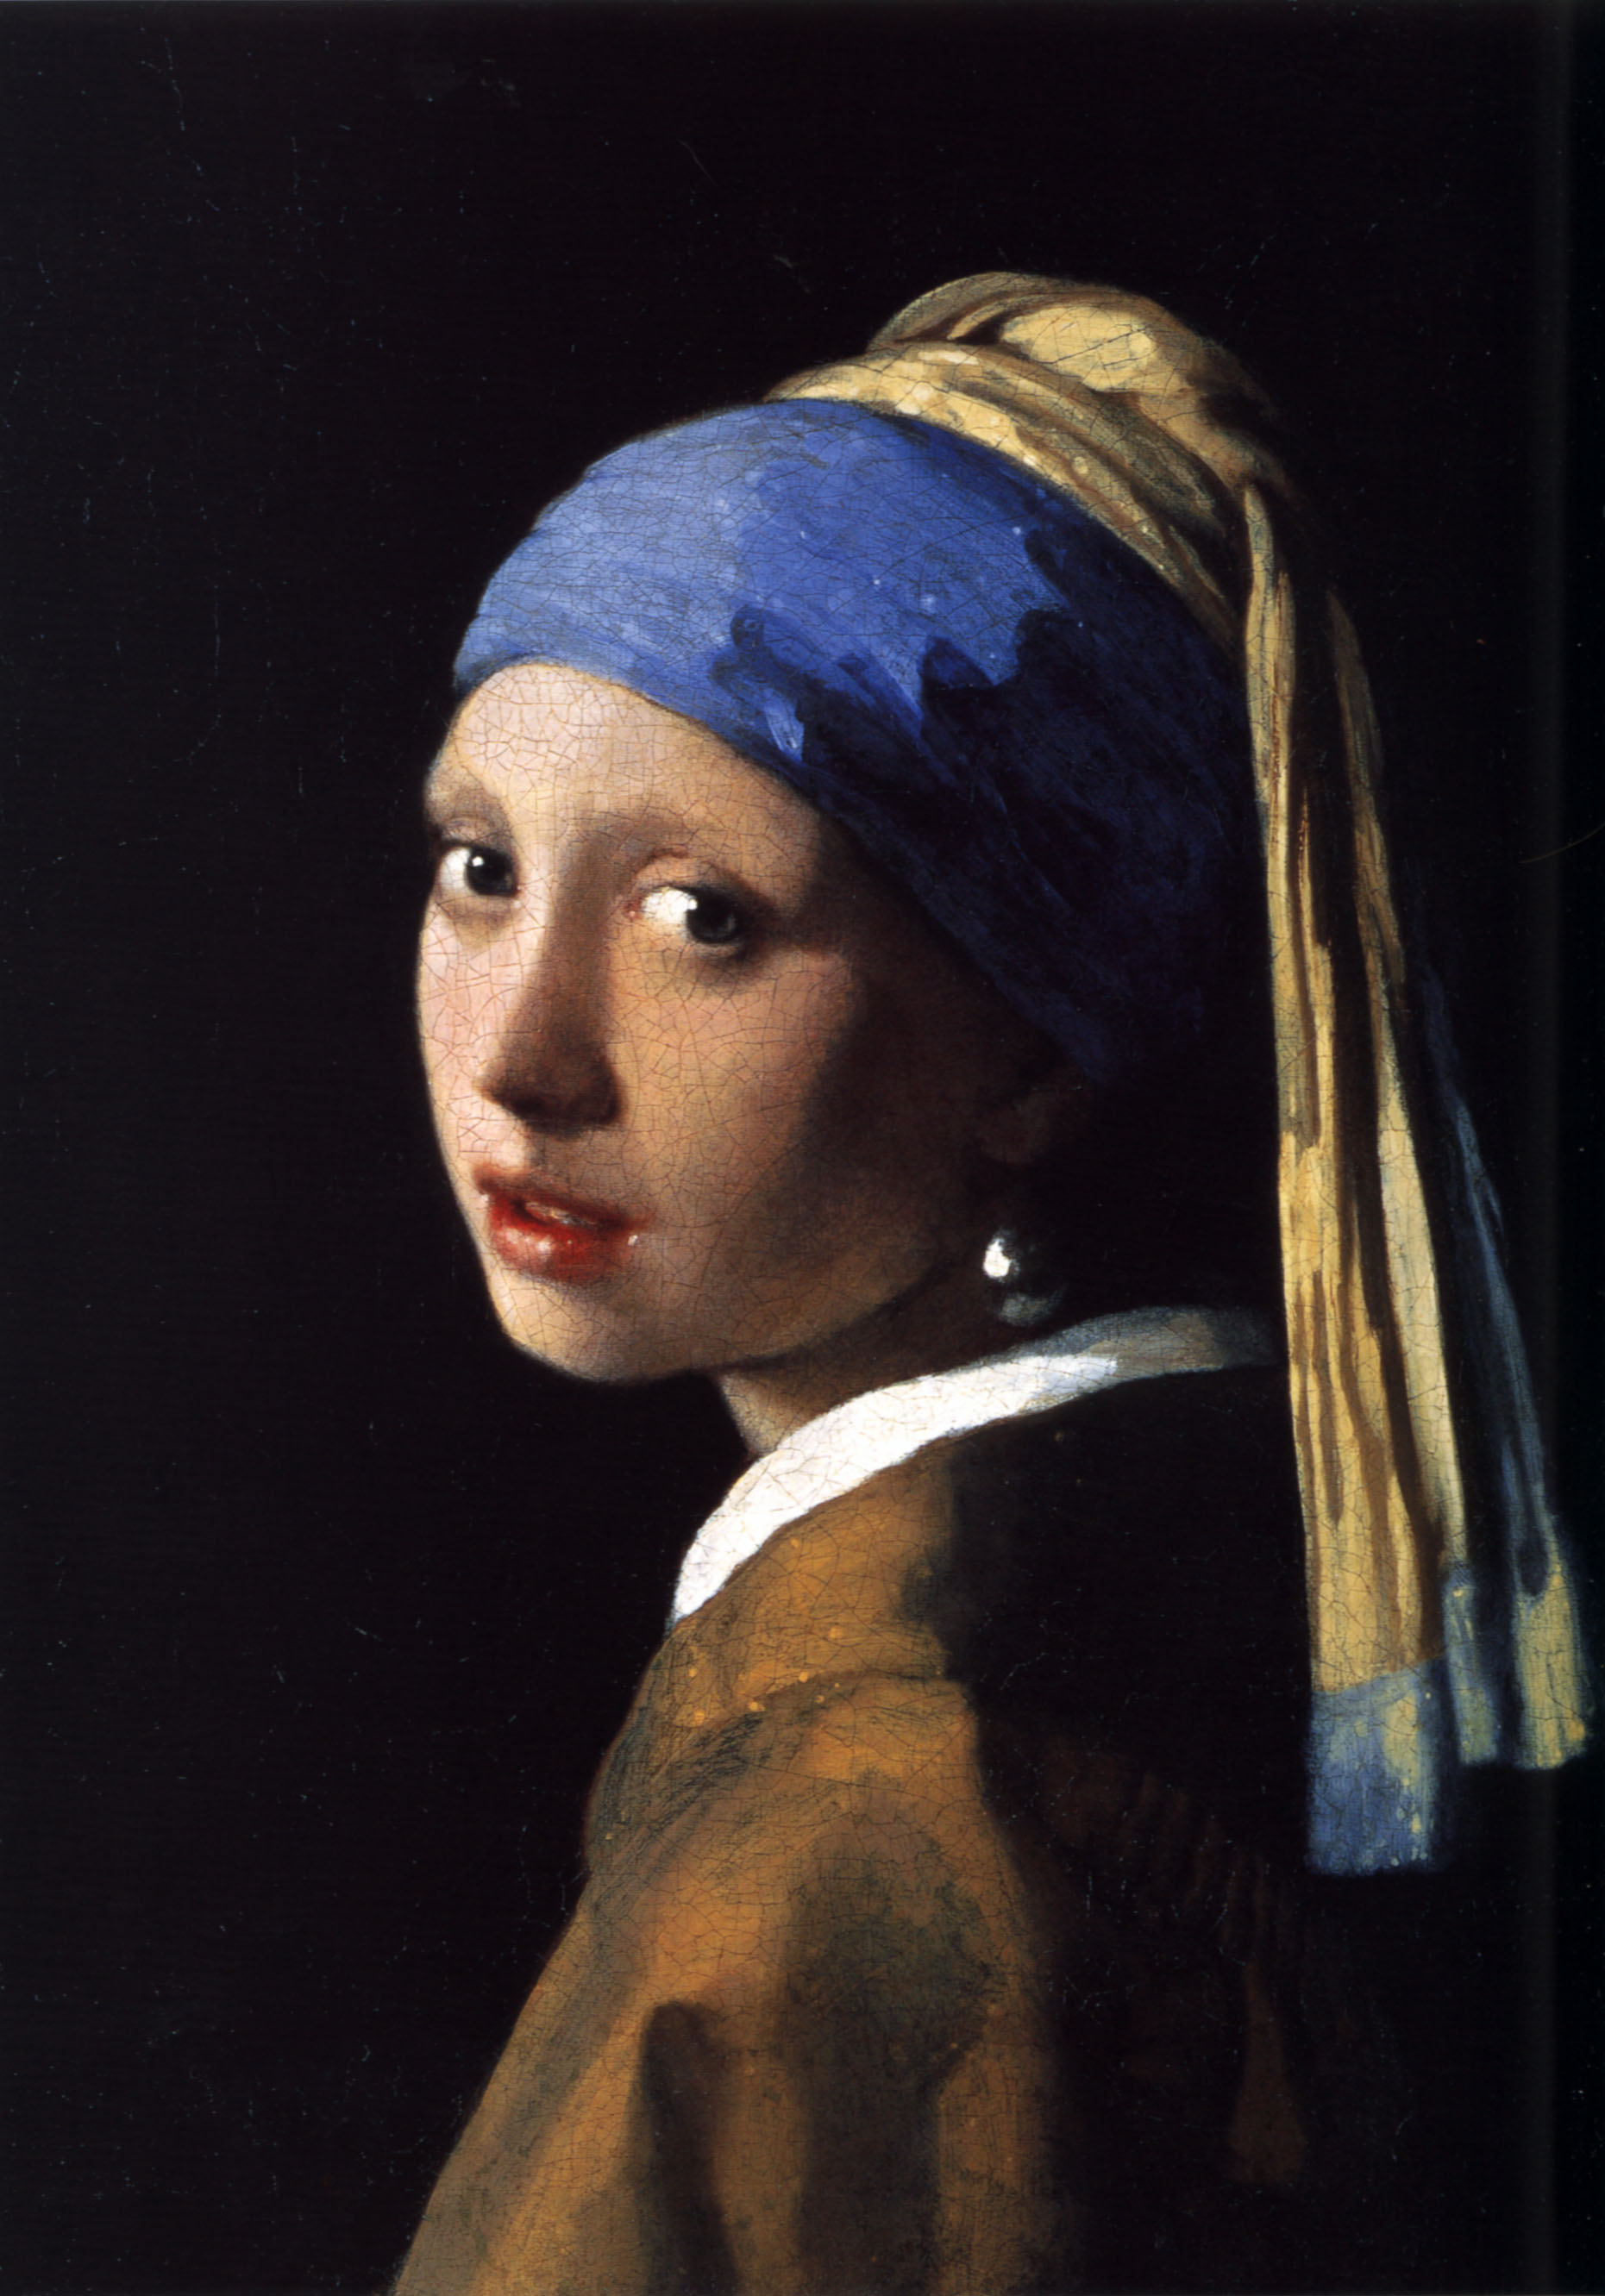 Johannes Vermeer - The Girl With The Pearl Earring 1665